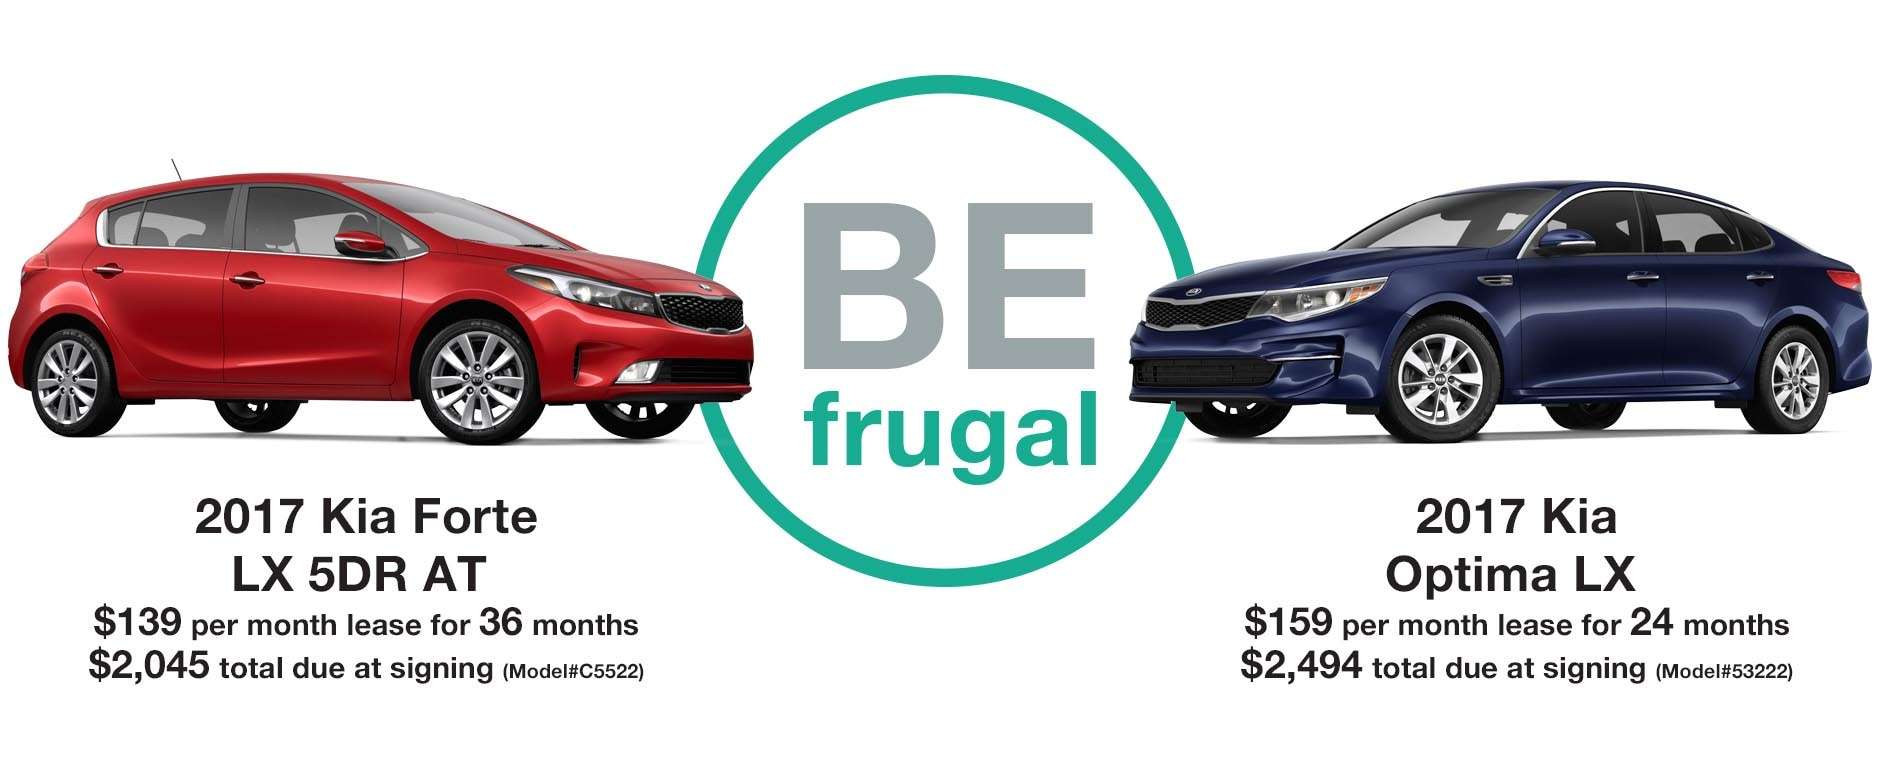 BE FRUGAL. Lease a 2017 Forte for just $139 per month with $2,045 due at signing or lease a 2017 Optima for $159 per month with $2,494 due at signing.